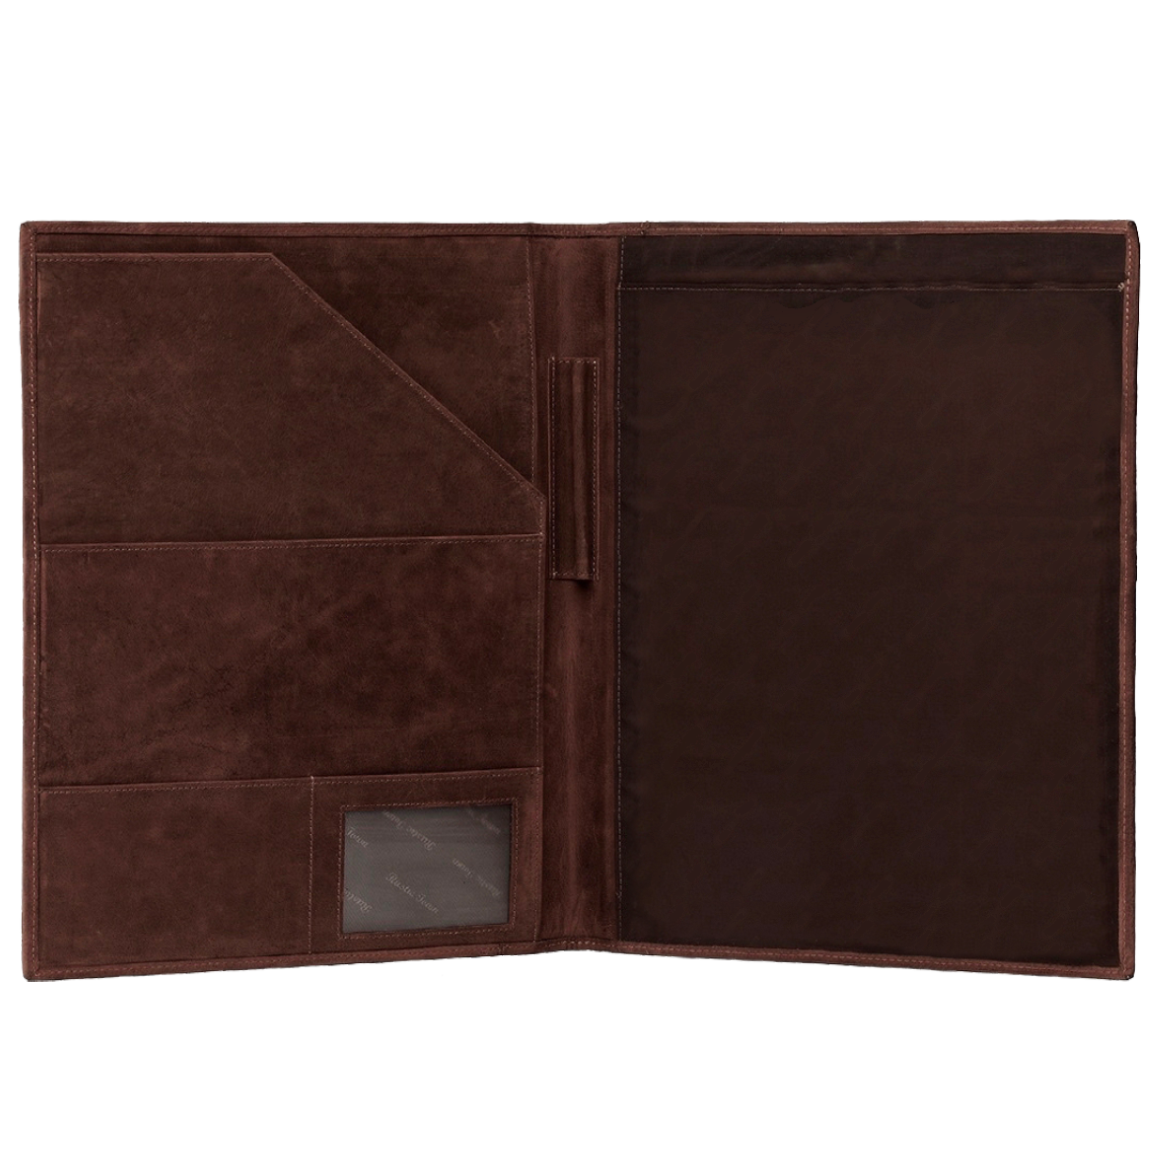 Royal Durable Leather Portfolio Office File Folder (Dark Brown)